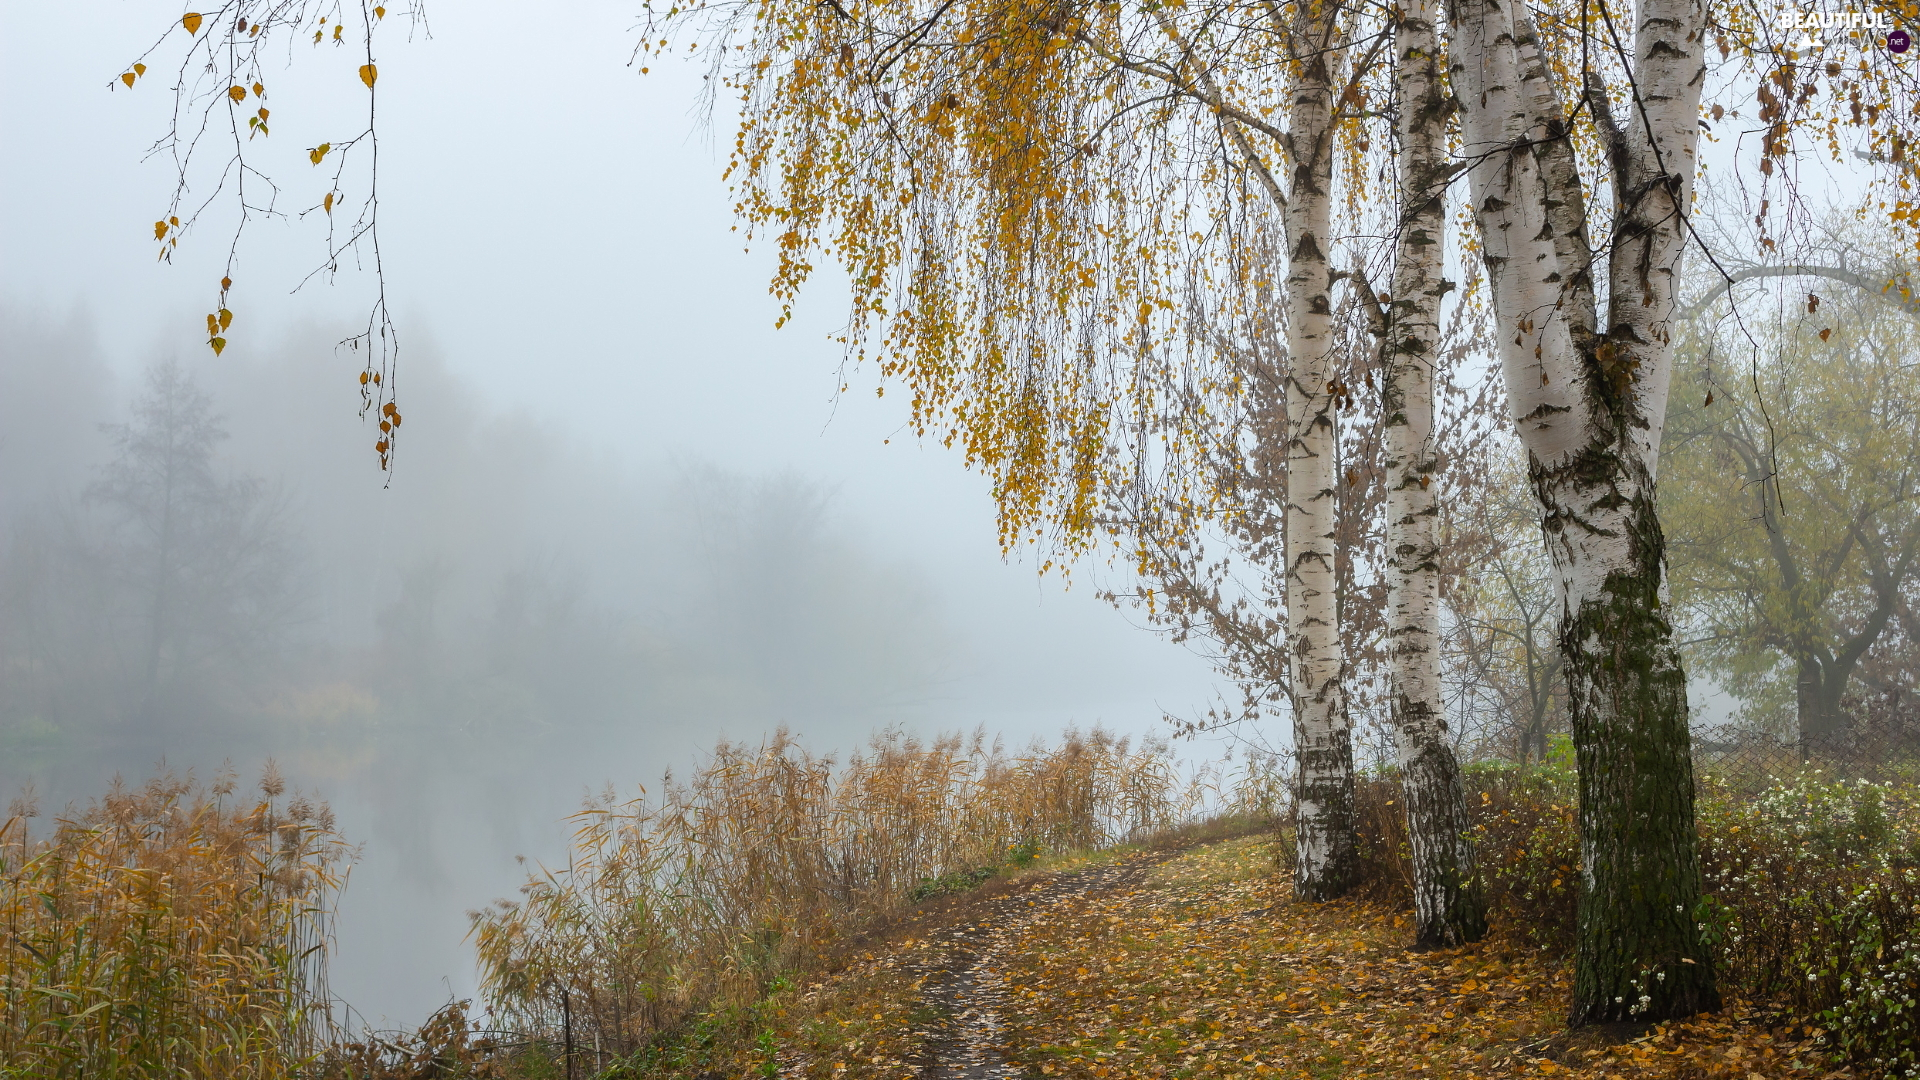 viewes, trees, birch, Yellowed, Fog, River, grass, Path, Leaf